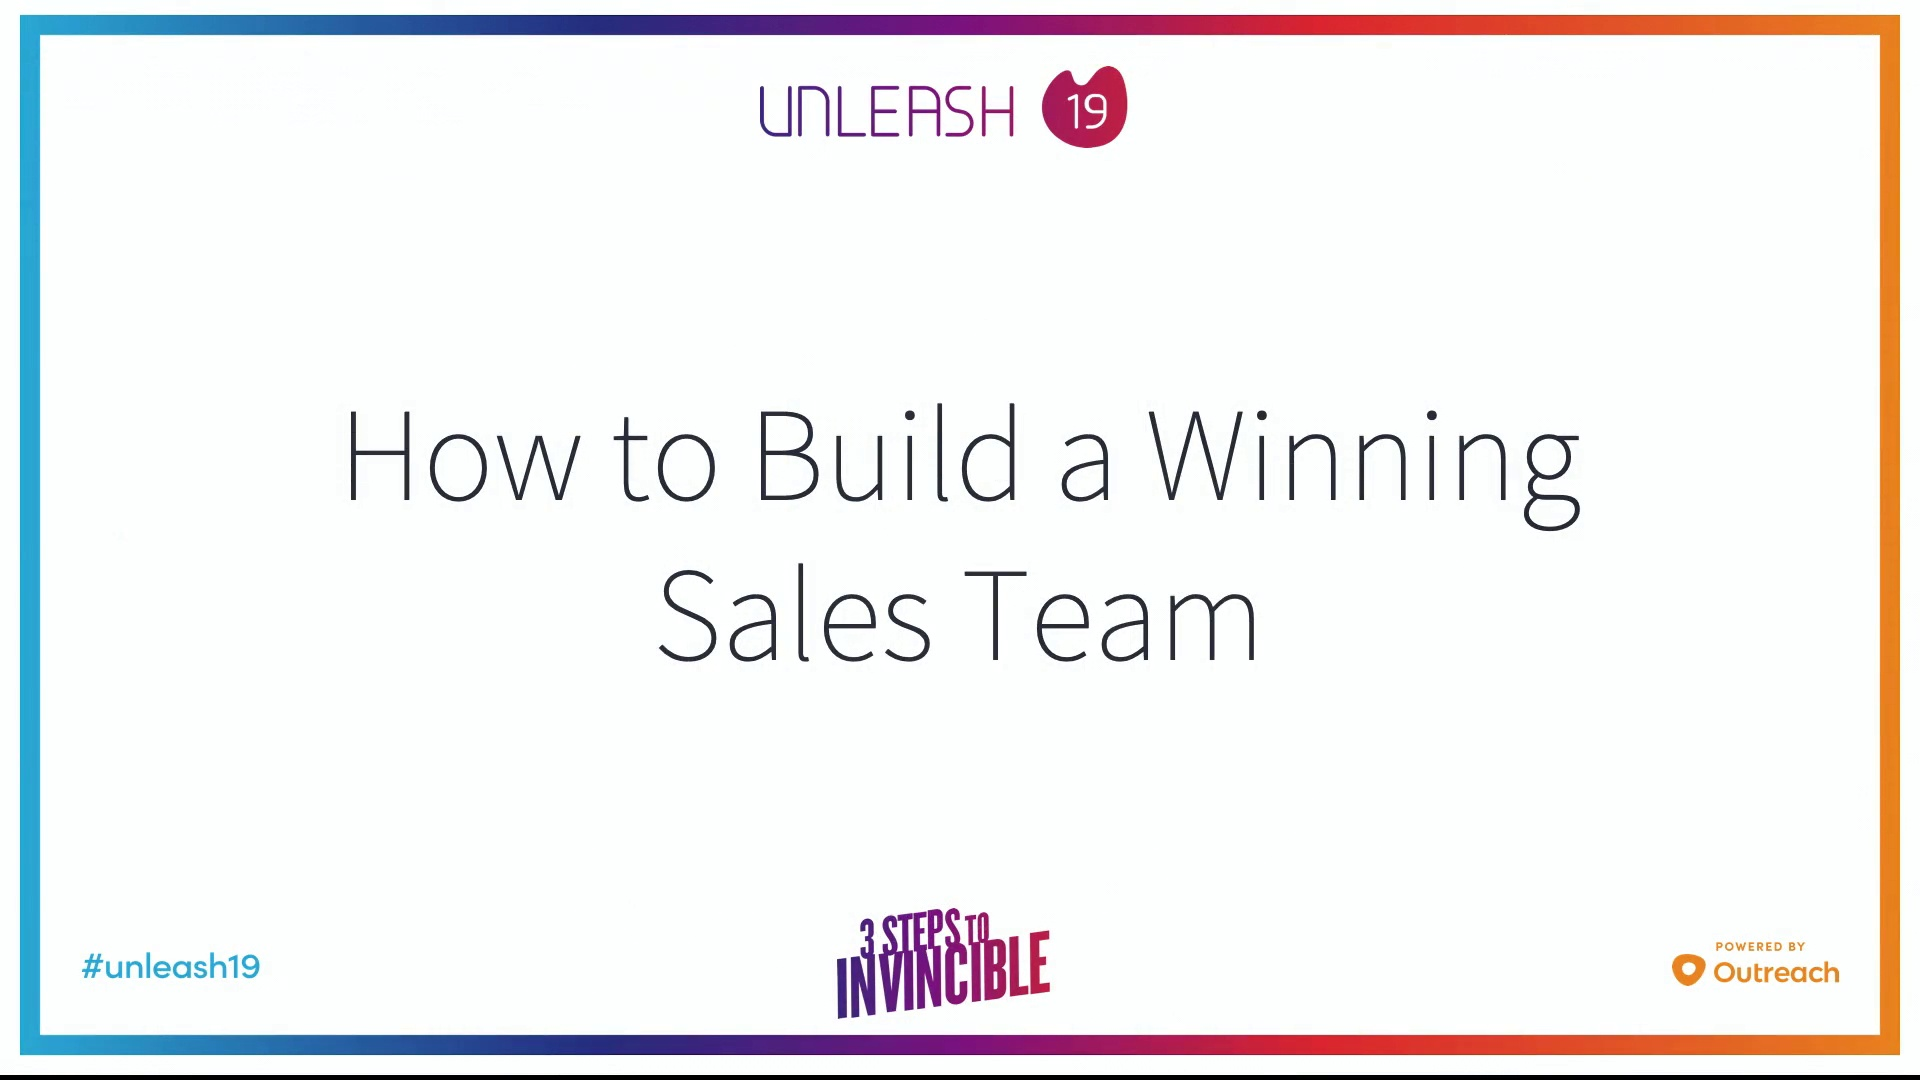 How to Build a Winning Sales Team - Cynthia Barnes, Steven Breyerton, Brian Trautschold, Gabe Villamizar